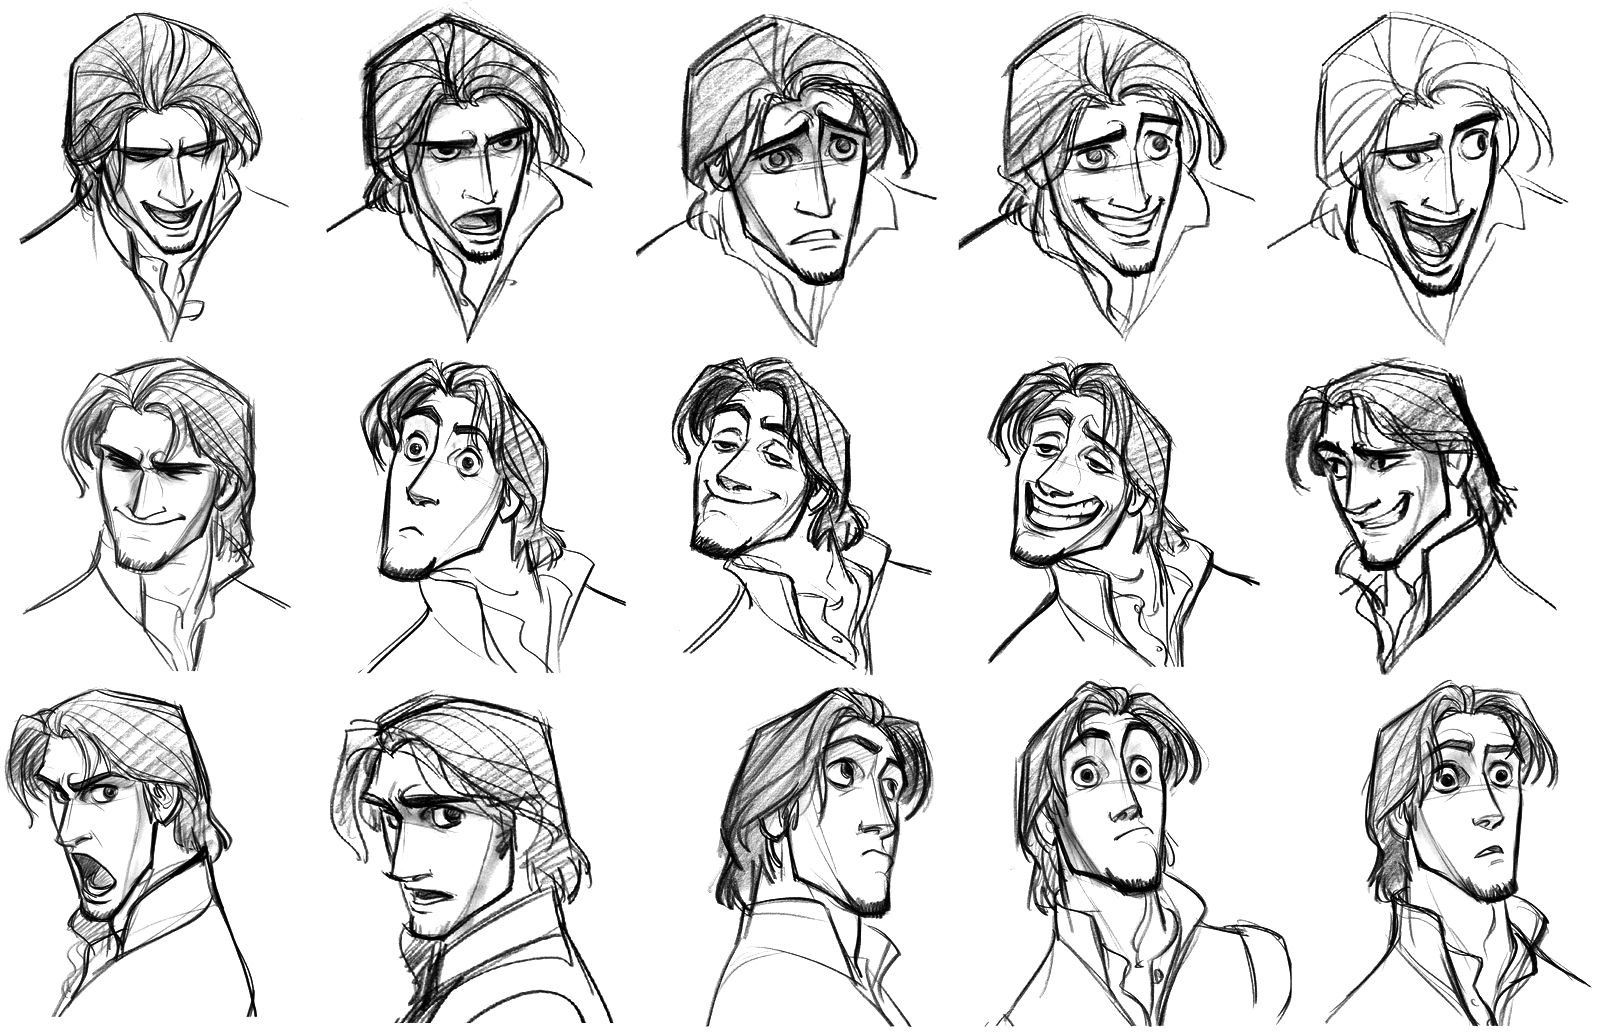 Character Design Definition : Download comic character design hd cool high definition